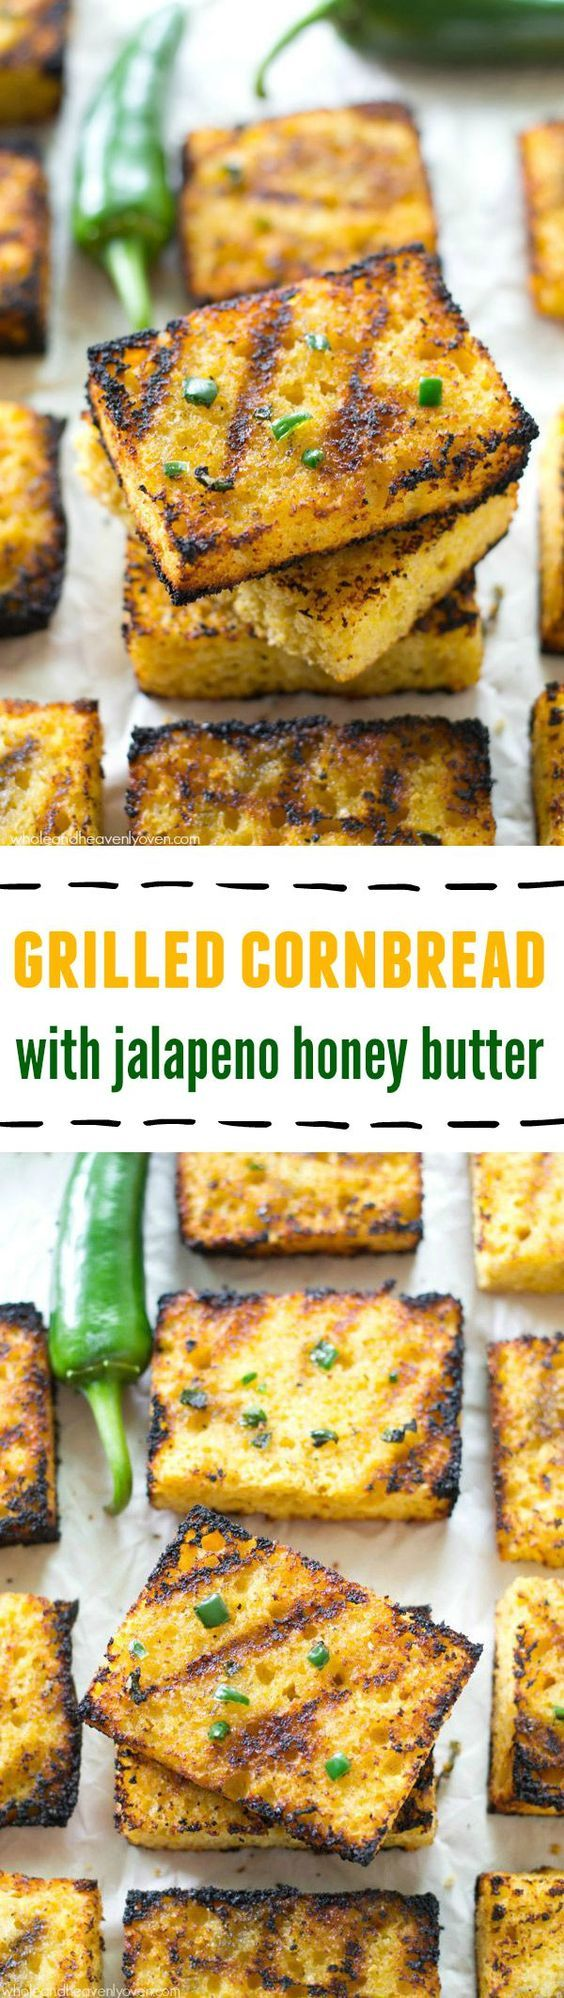 Soft, irresistible homemade cornbread squares are slathered up with a kickin' jalapeno honey butter and then quickly cooked on the grill to crisp, buttery heaven!